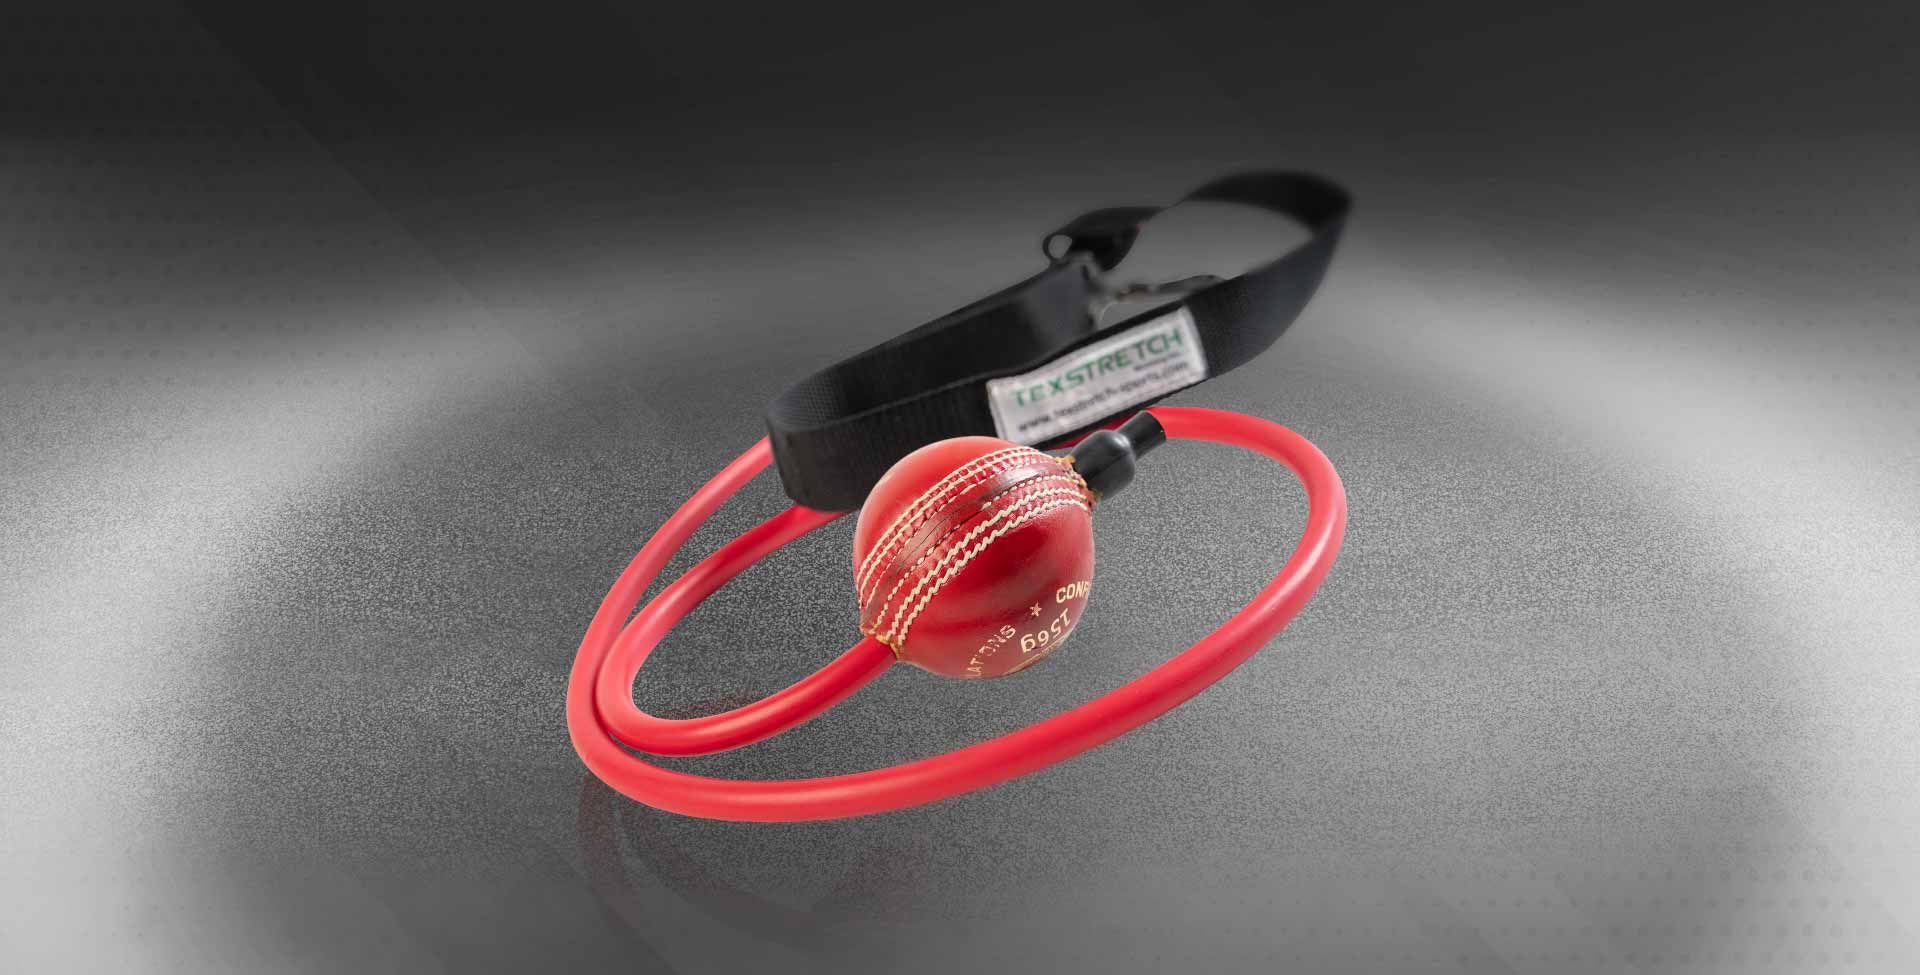 Texstretch Cricket Balling Trainer